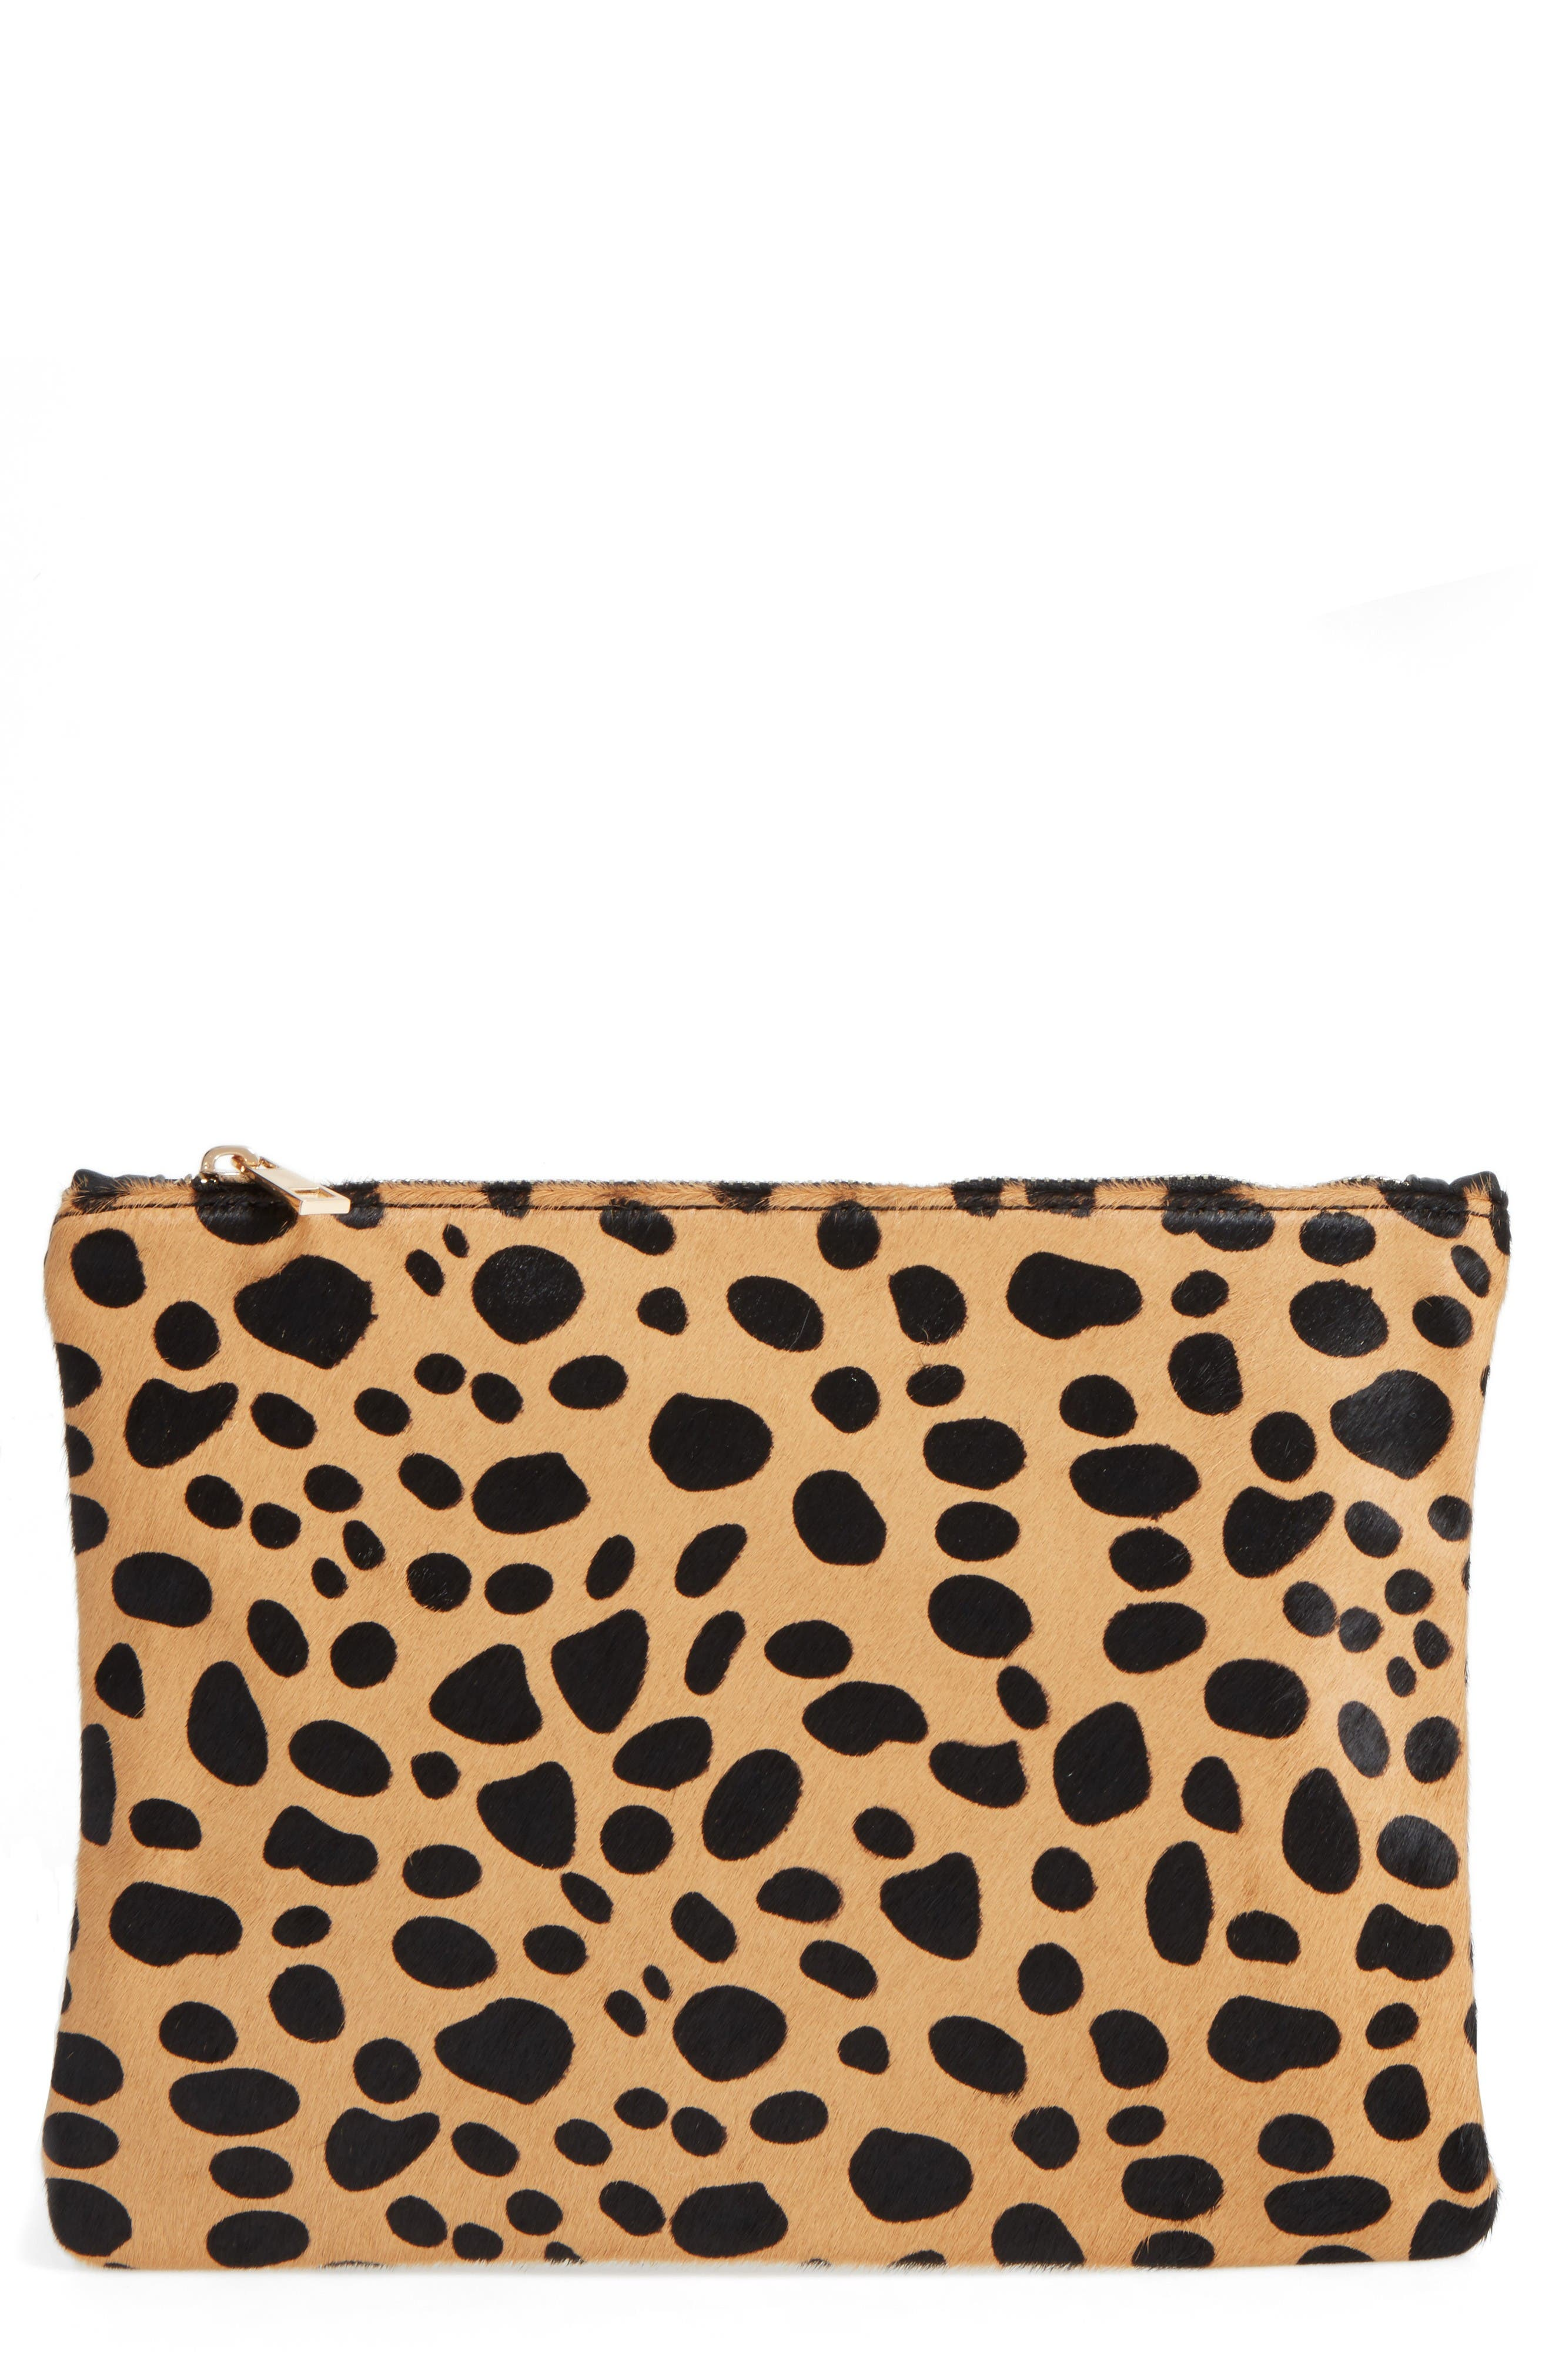 Main Image - BP. Leopard Print Genuine Calf Hair Clutch